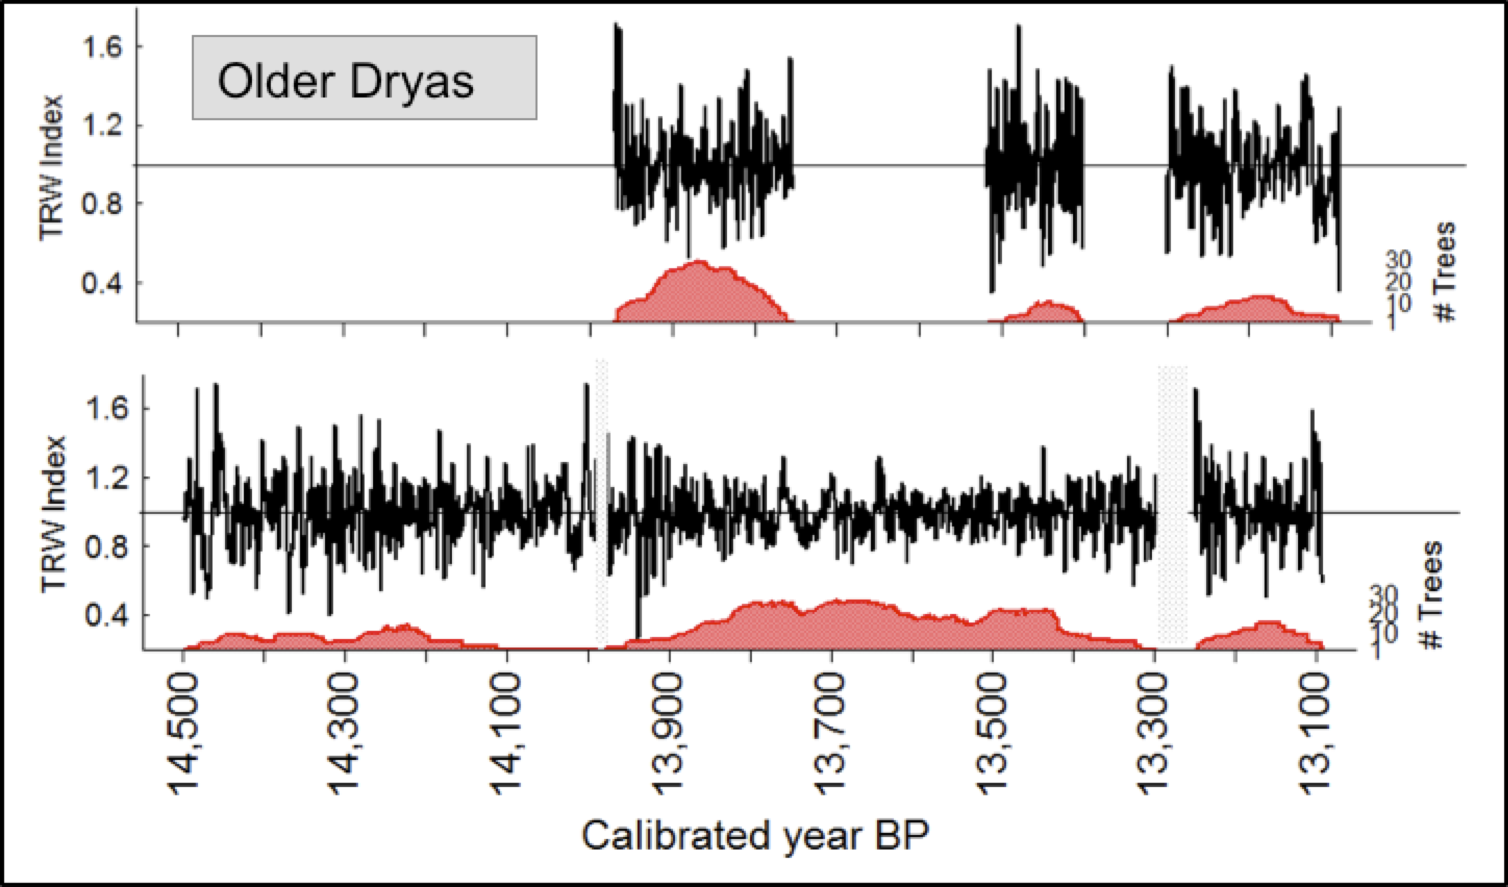 Older Dryas tree-ring records of spruce and larch.